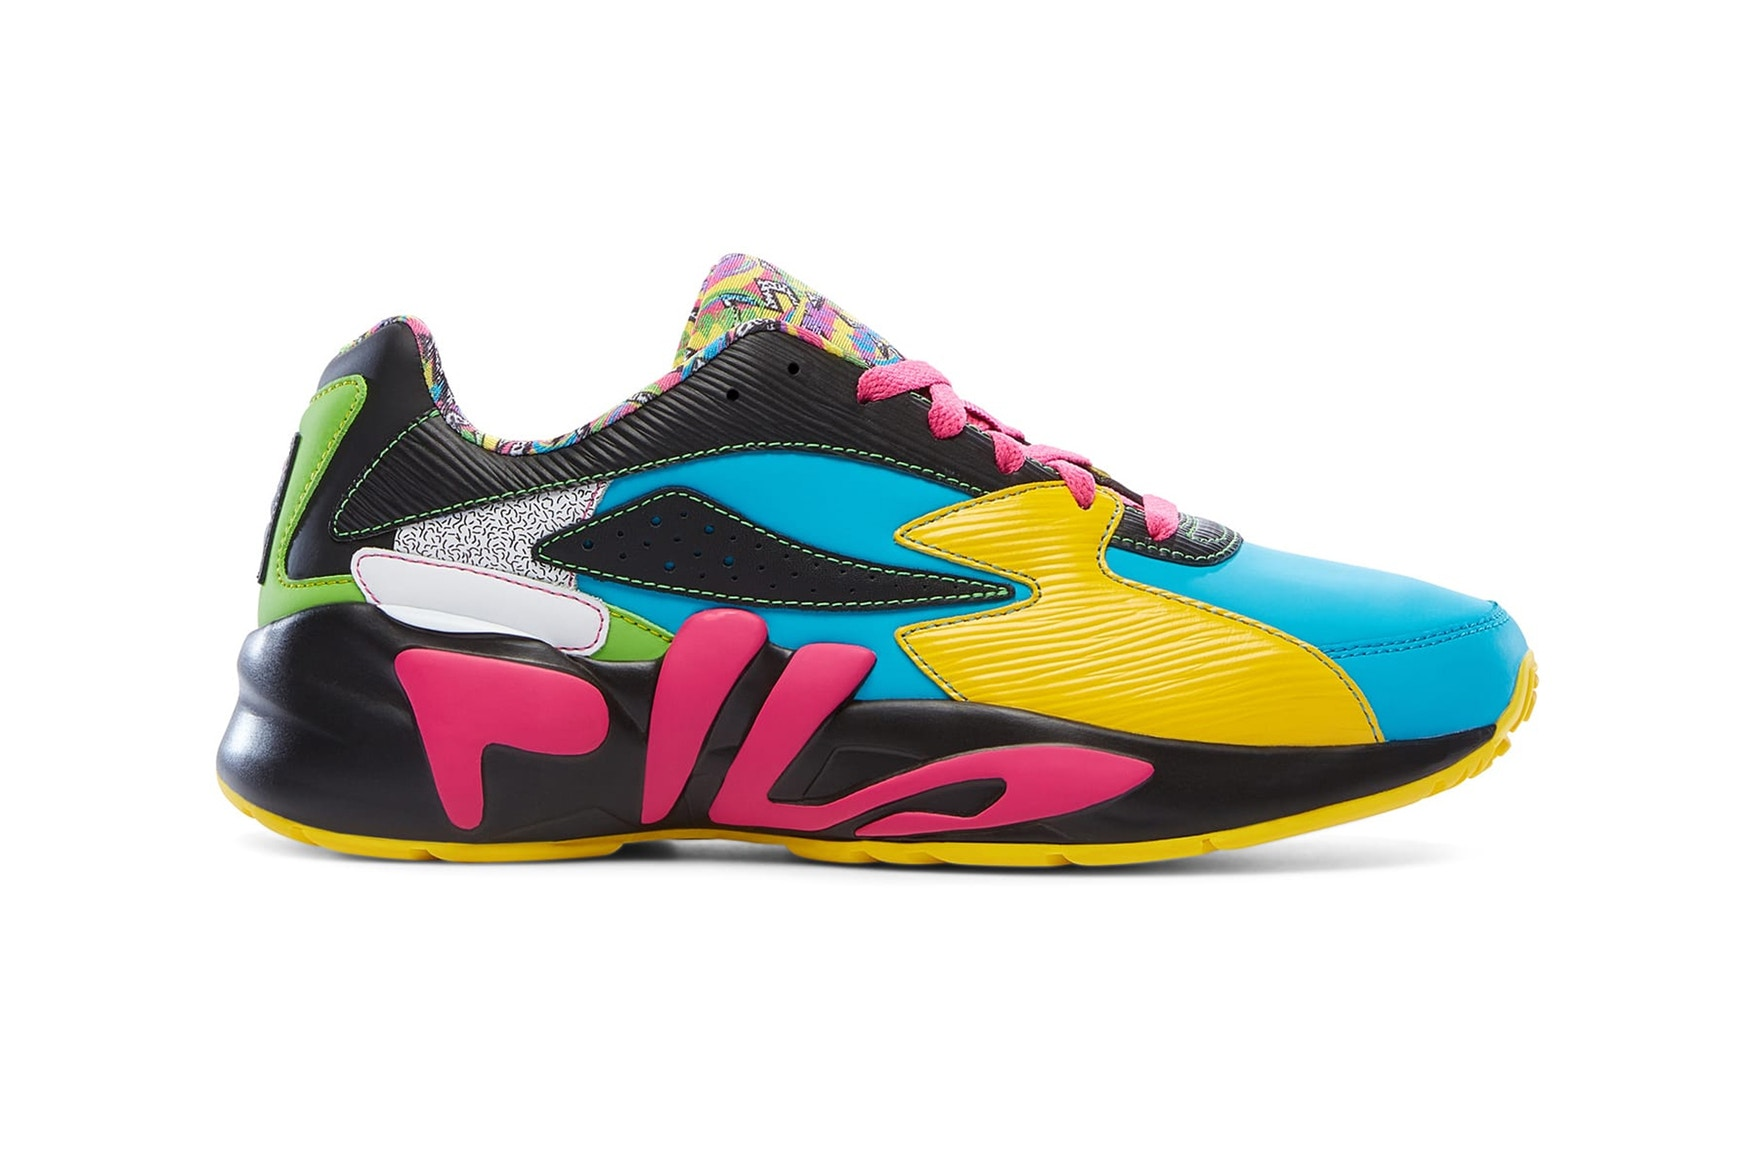 fila-revives-the-classic-mindblower-with-over-40-limited-edition-collaborations-11